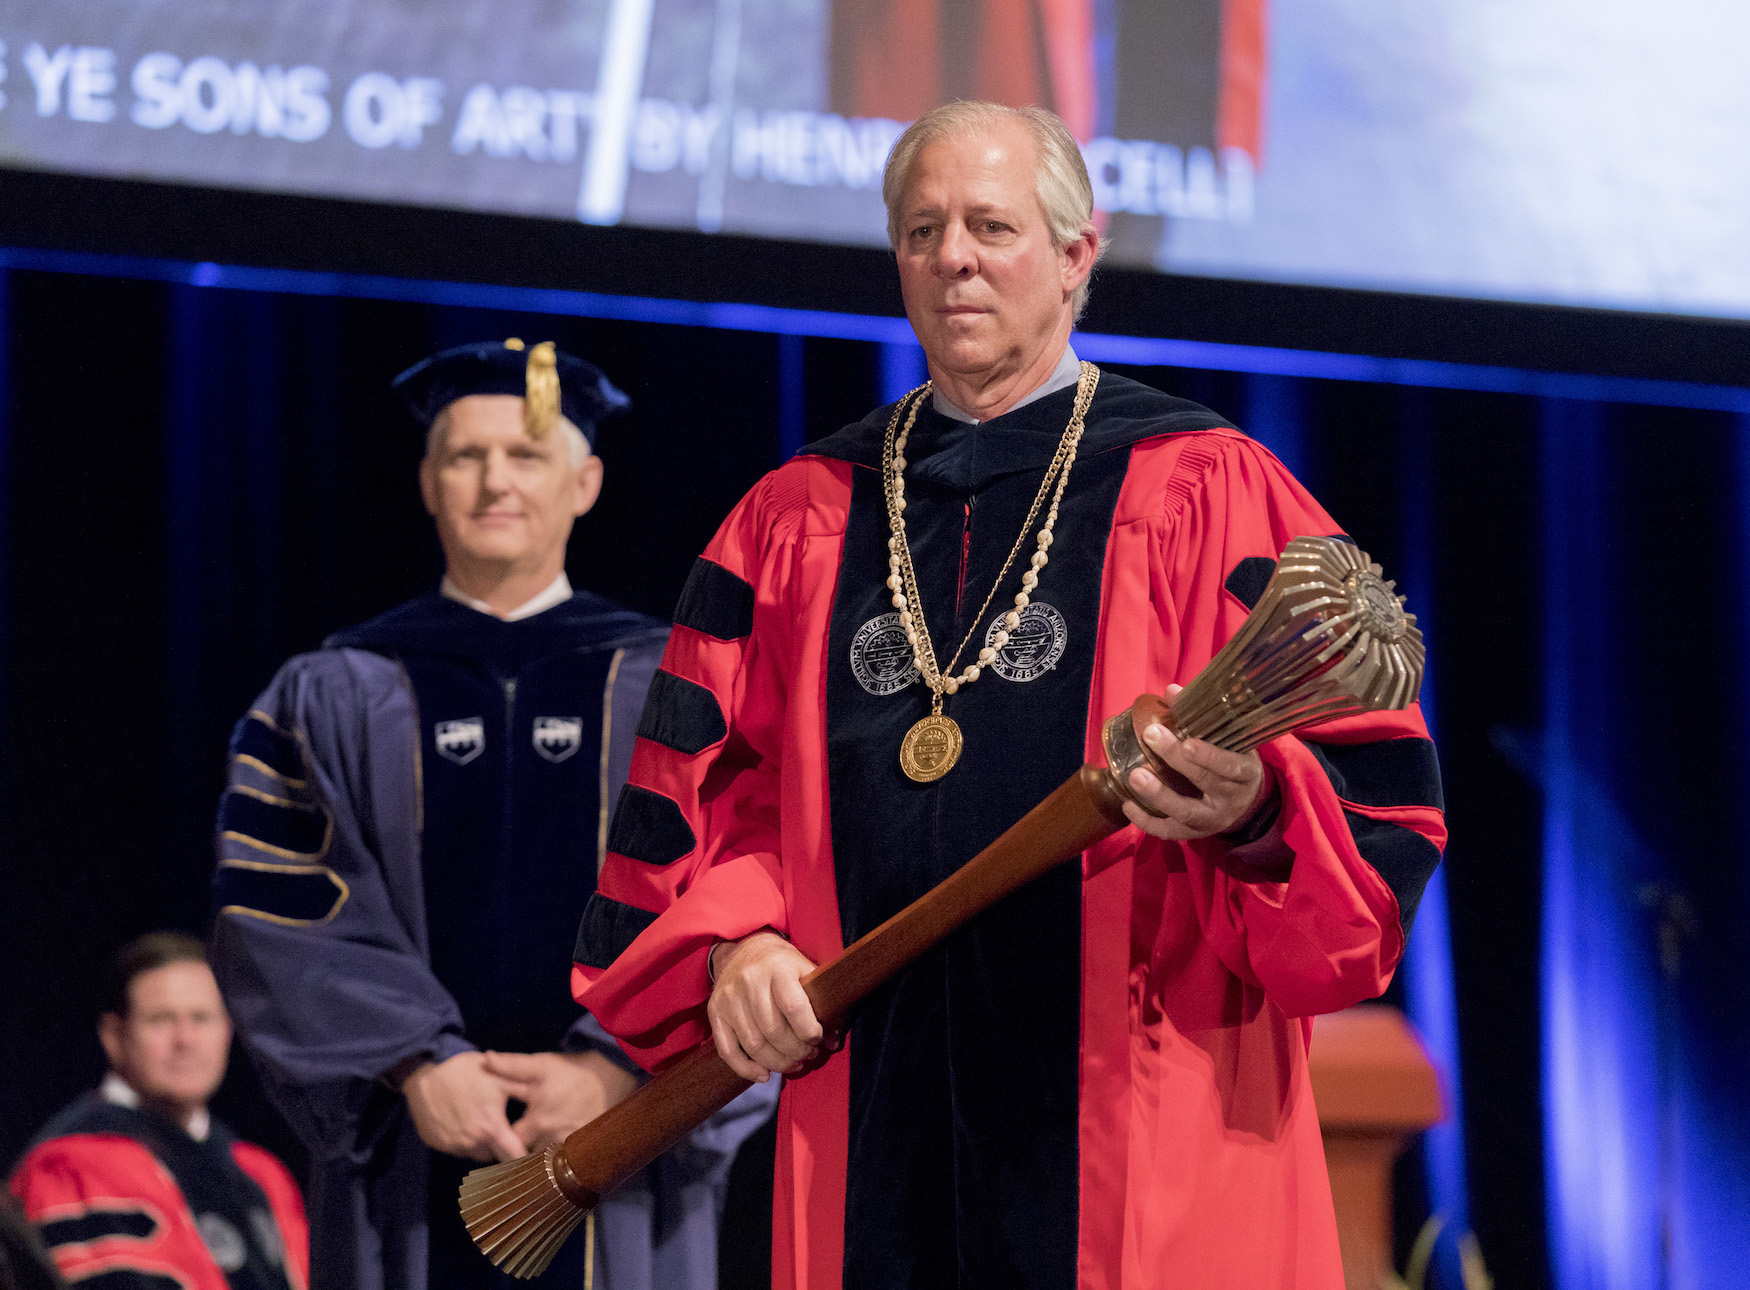 Dr. Robbins holding the Ceremonial Mace